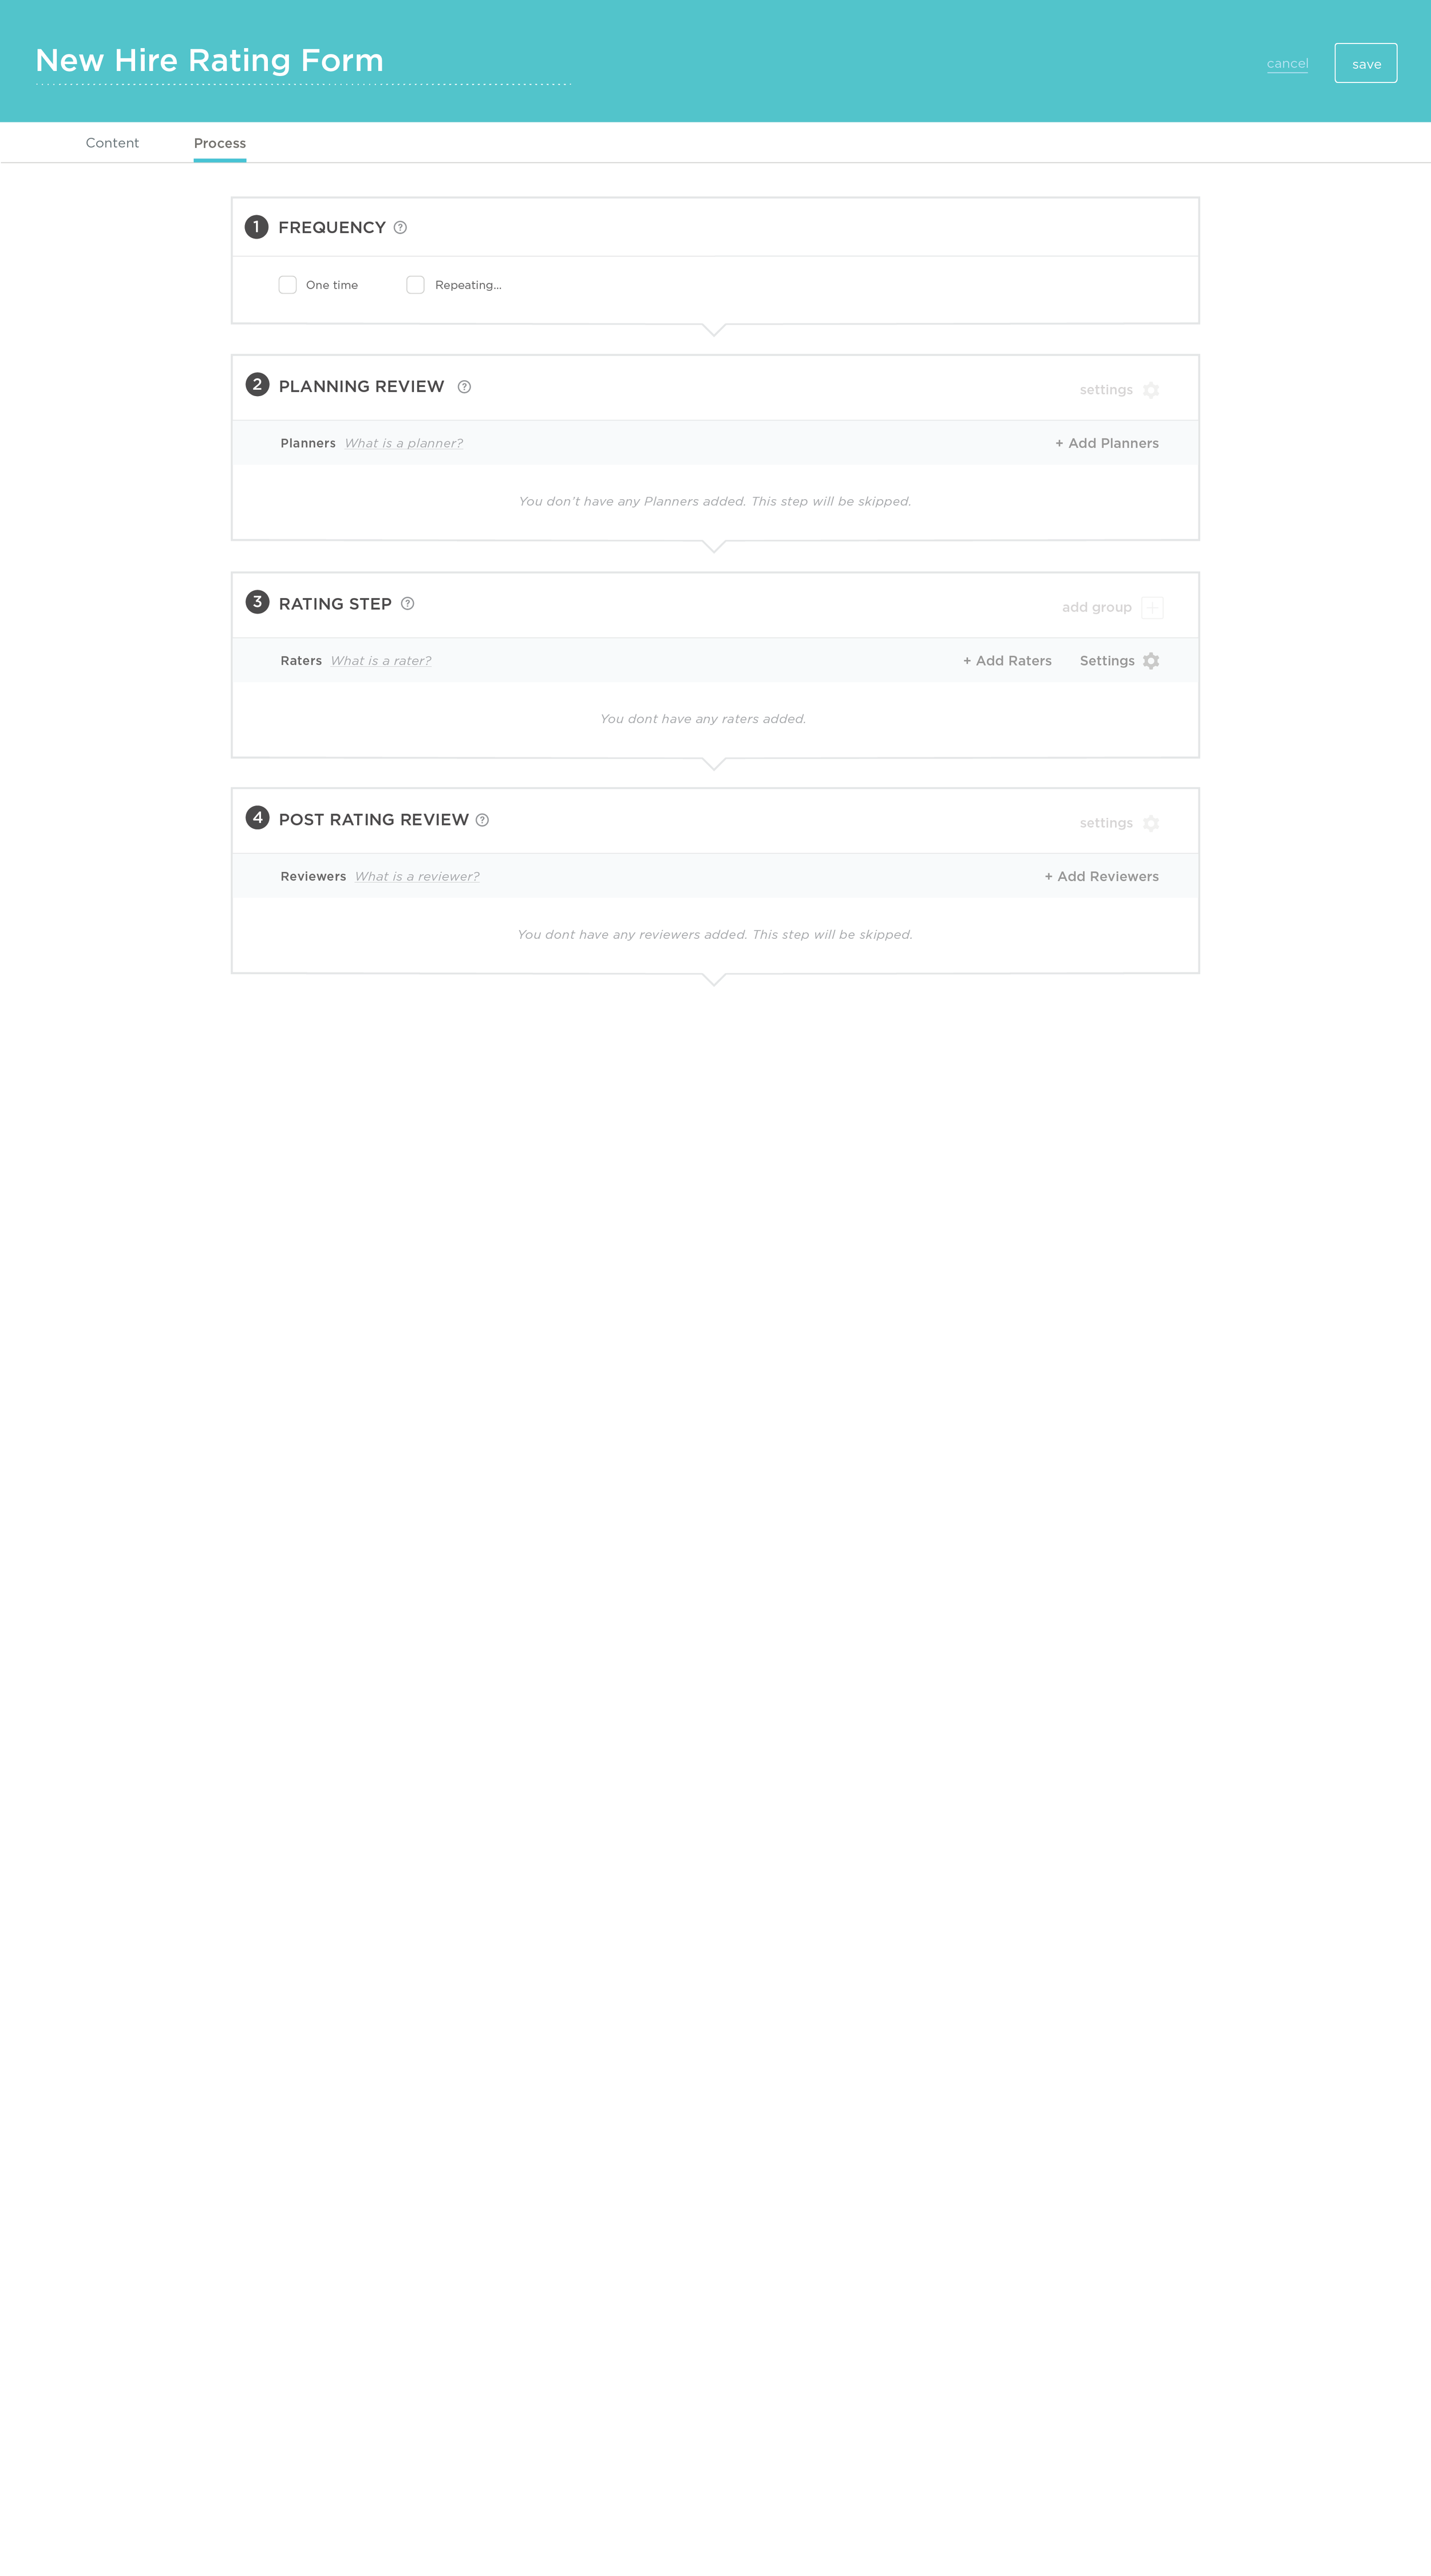 Invision_Pe_rating-form-process_03_1.png